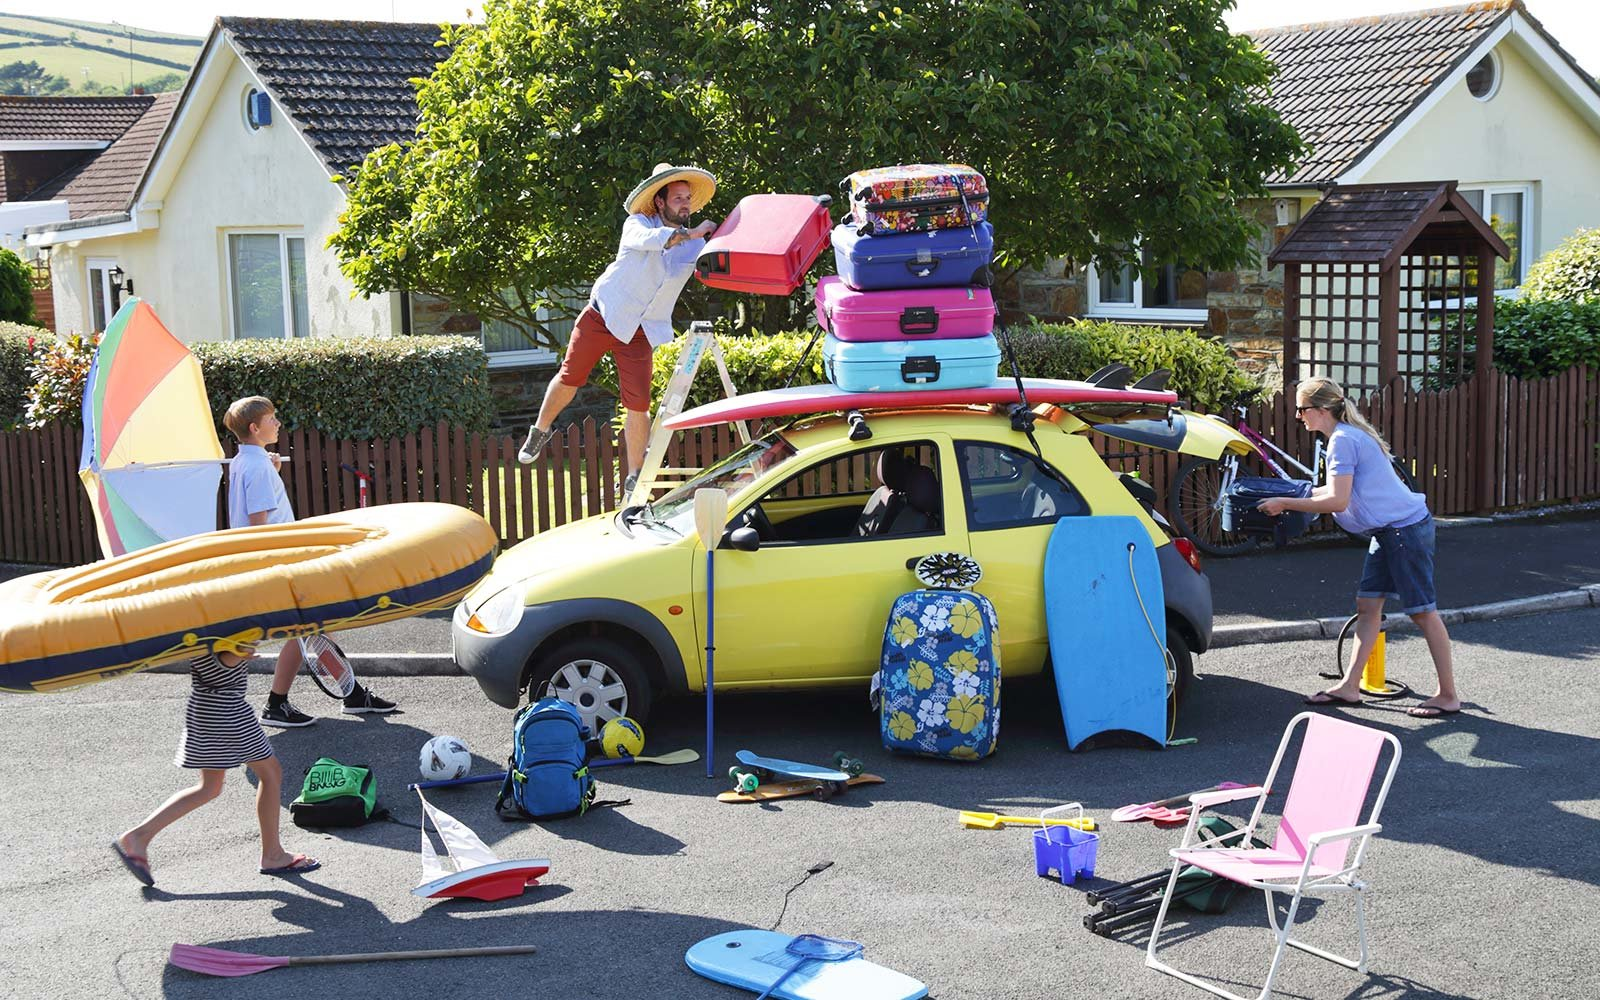 Family packing car vacation planning